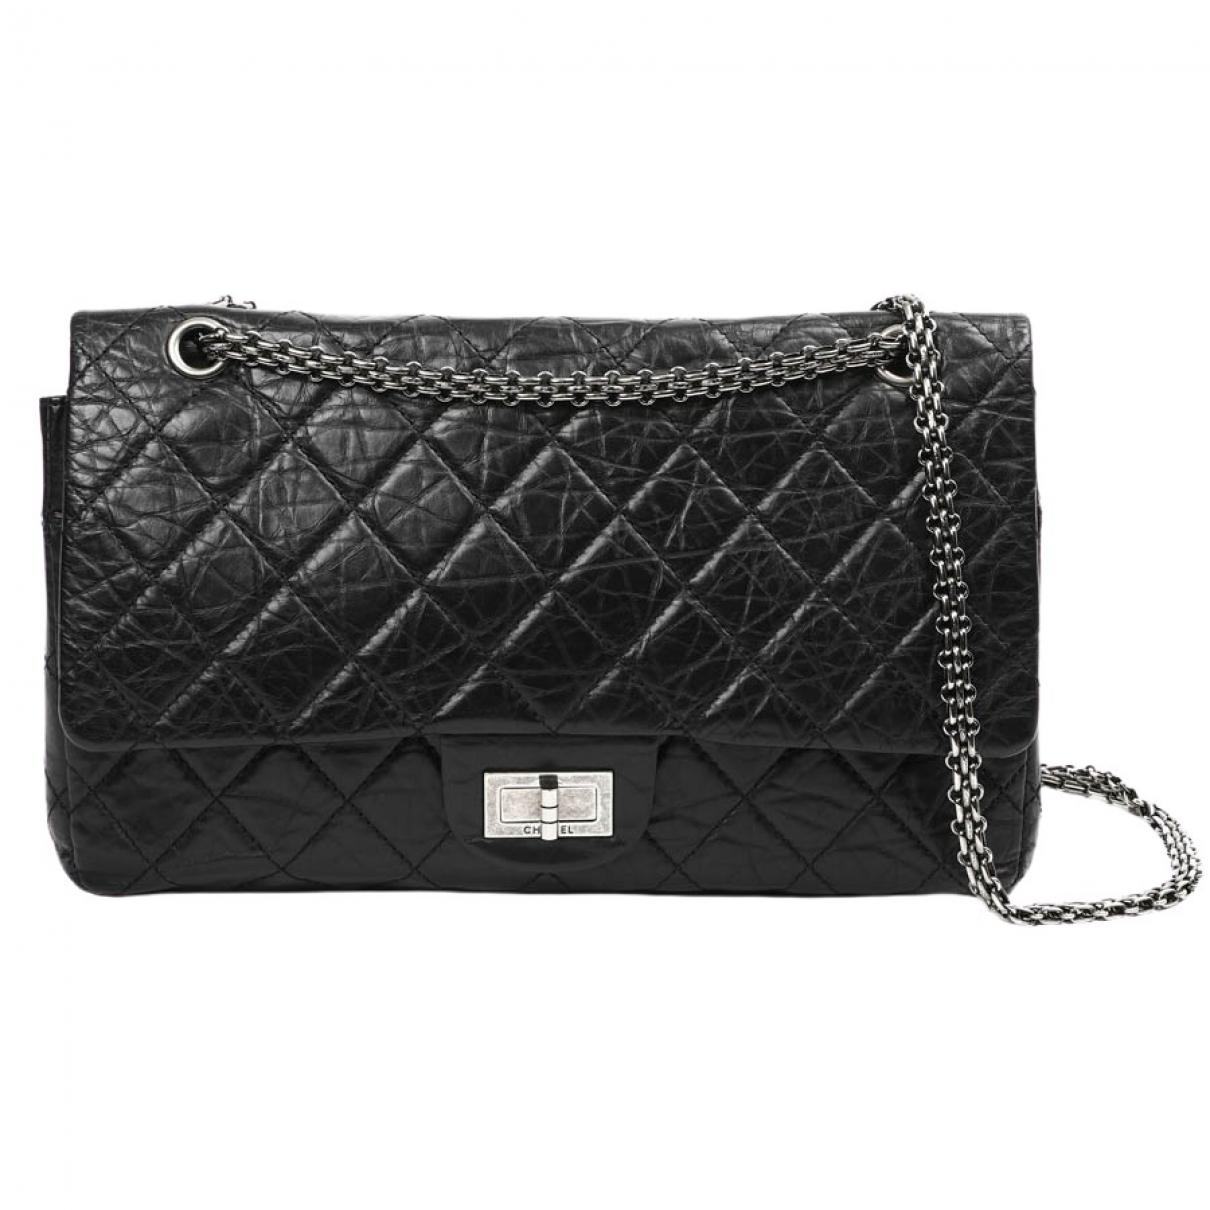 Chanel 2.55 Black Leather handbag for Women \N